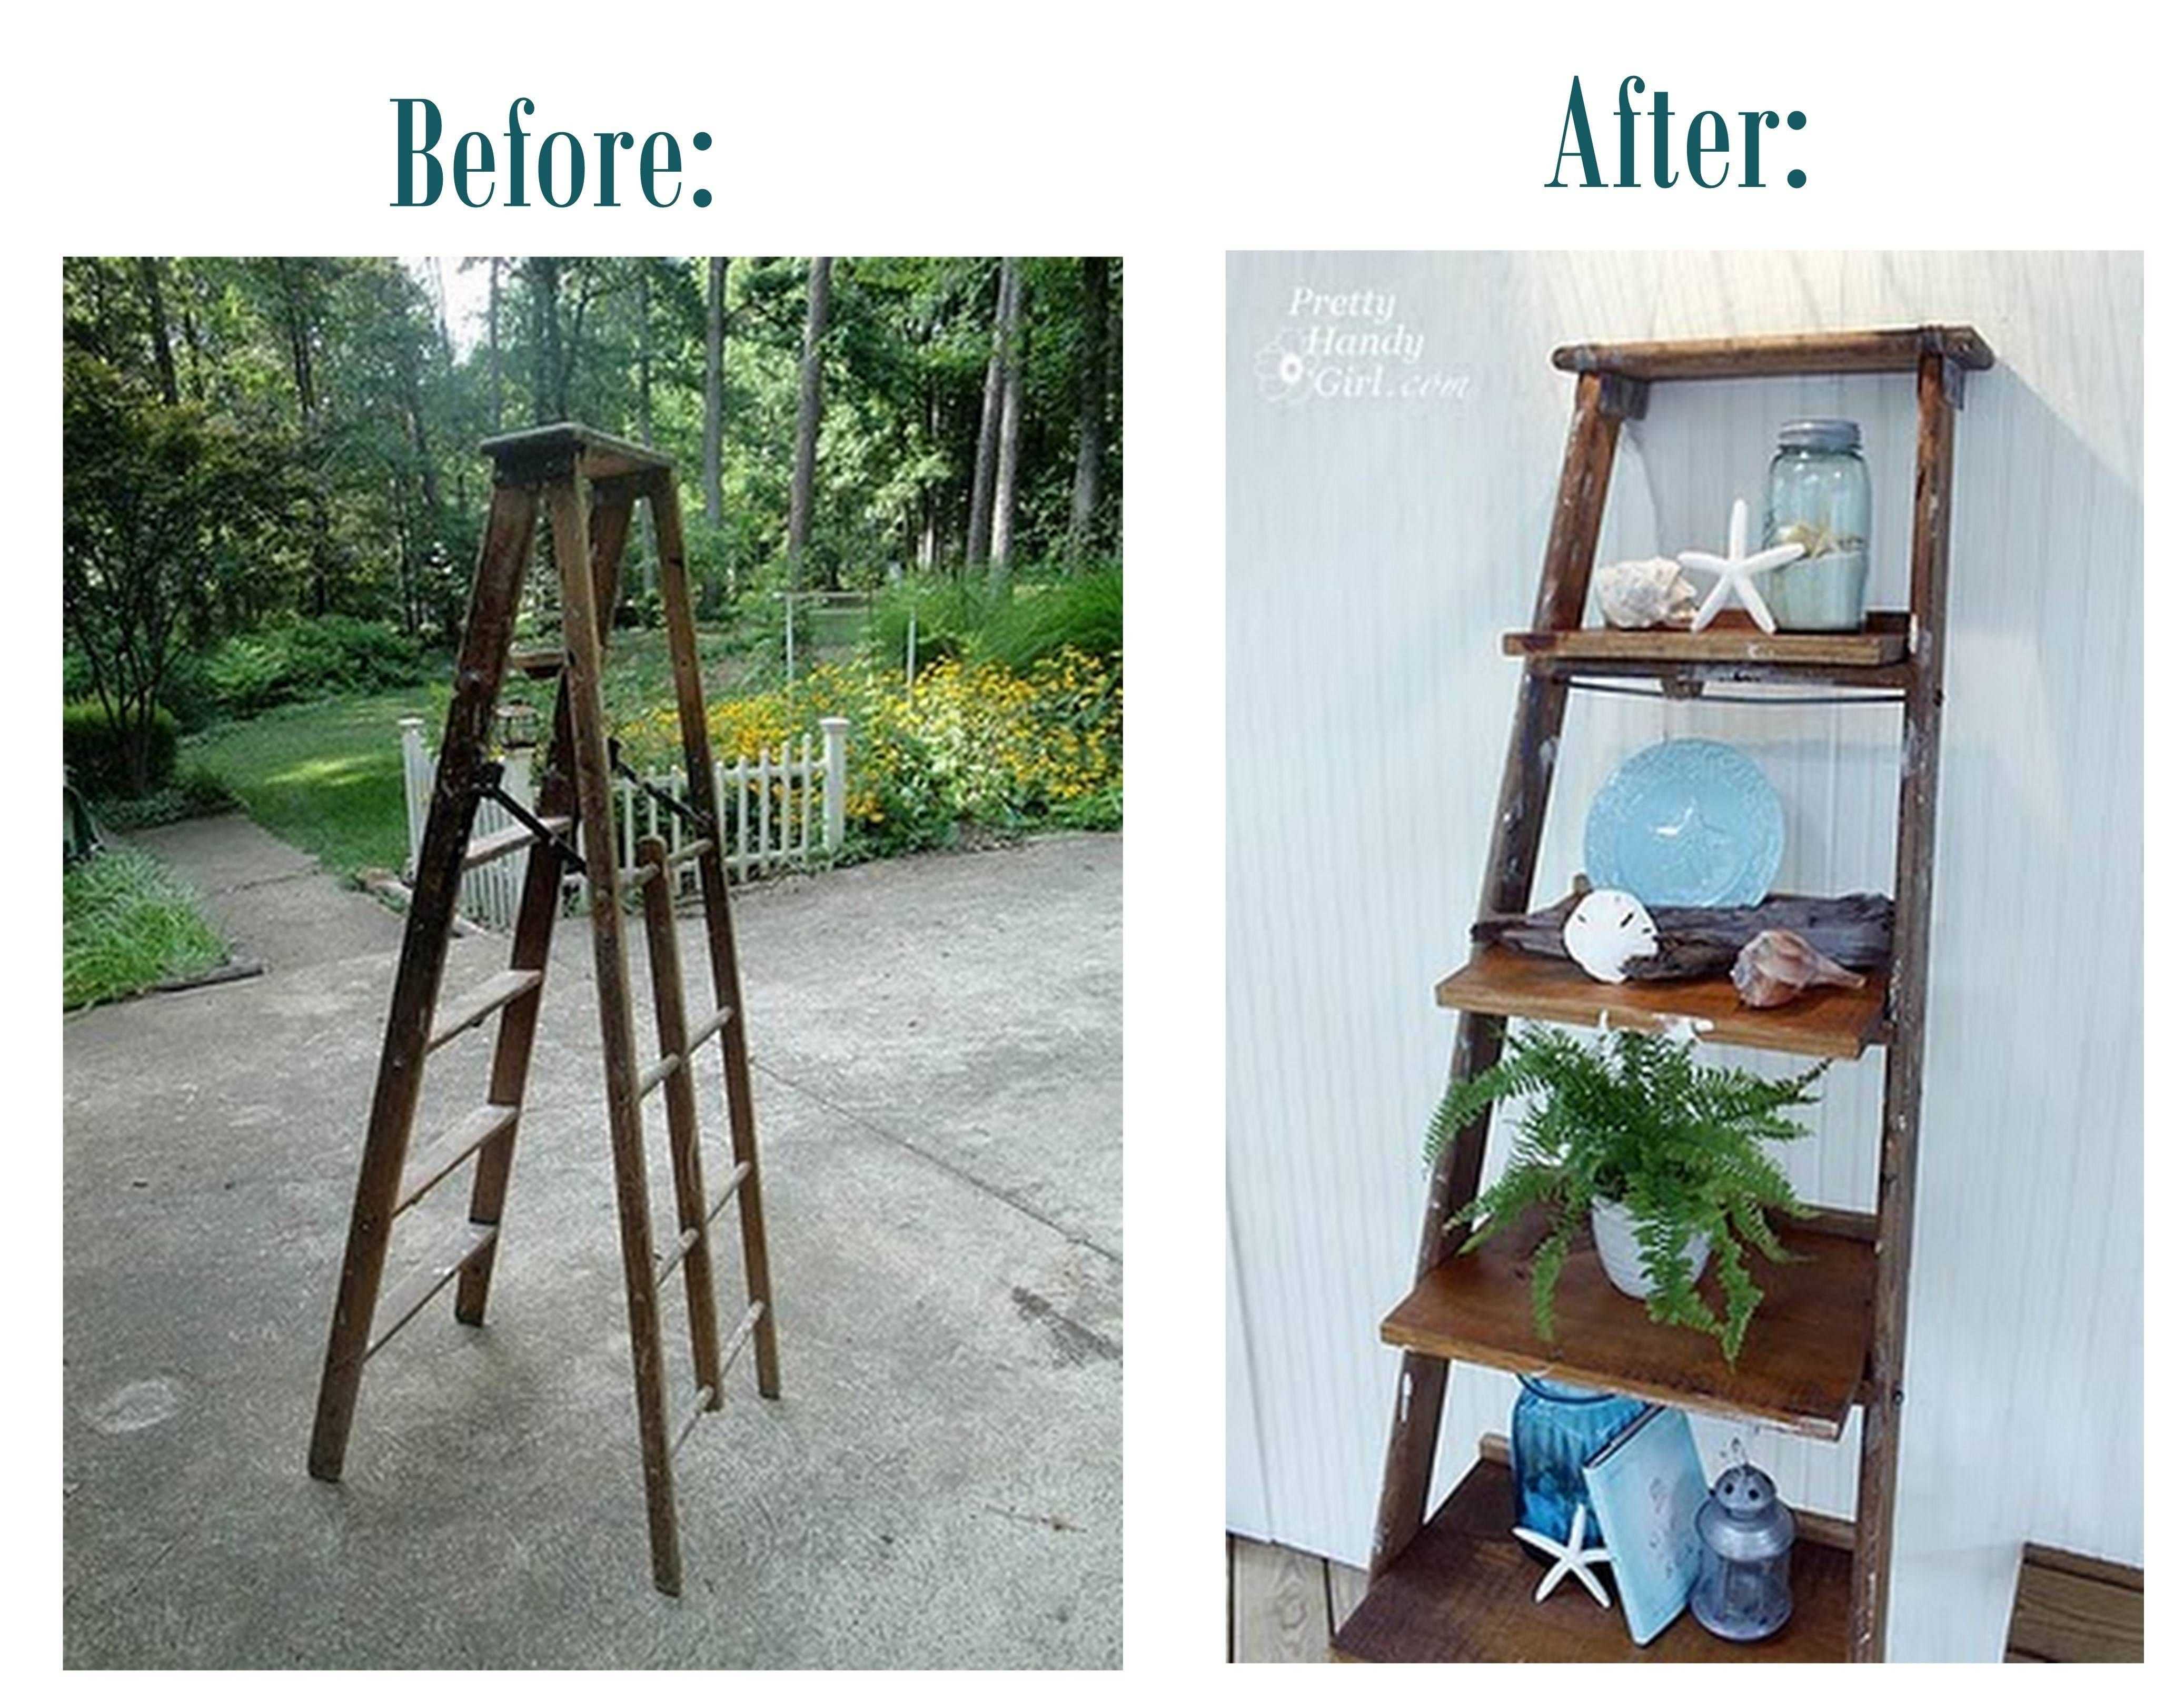 Centsational Girl » Blog Archive Guest Post: How To Build Ladder Shelves    Centsational Girl